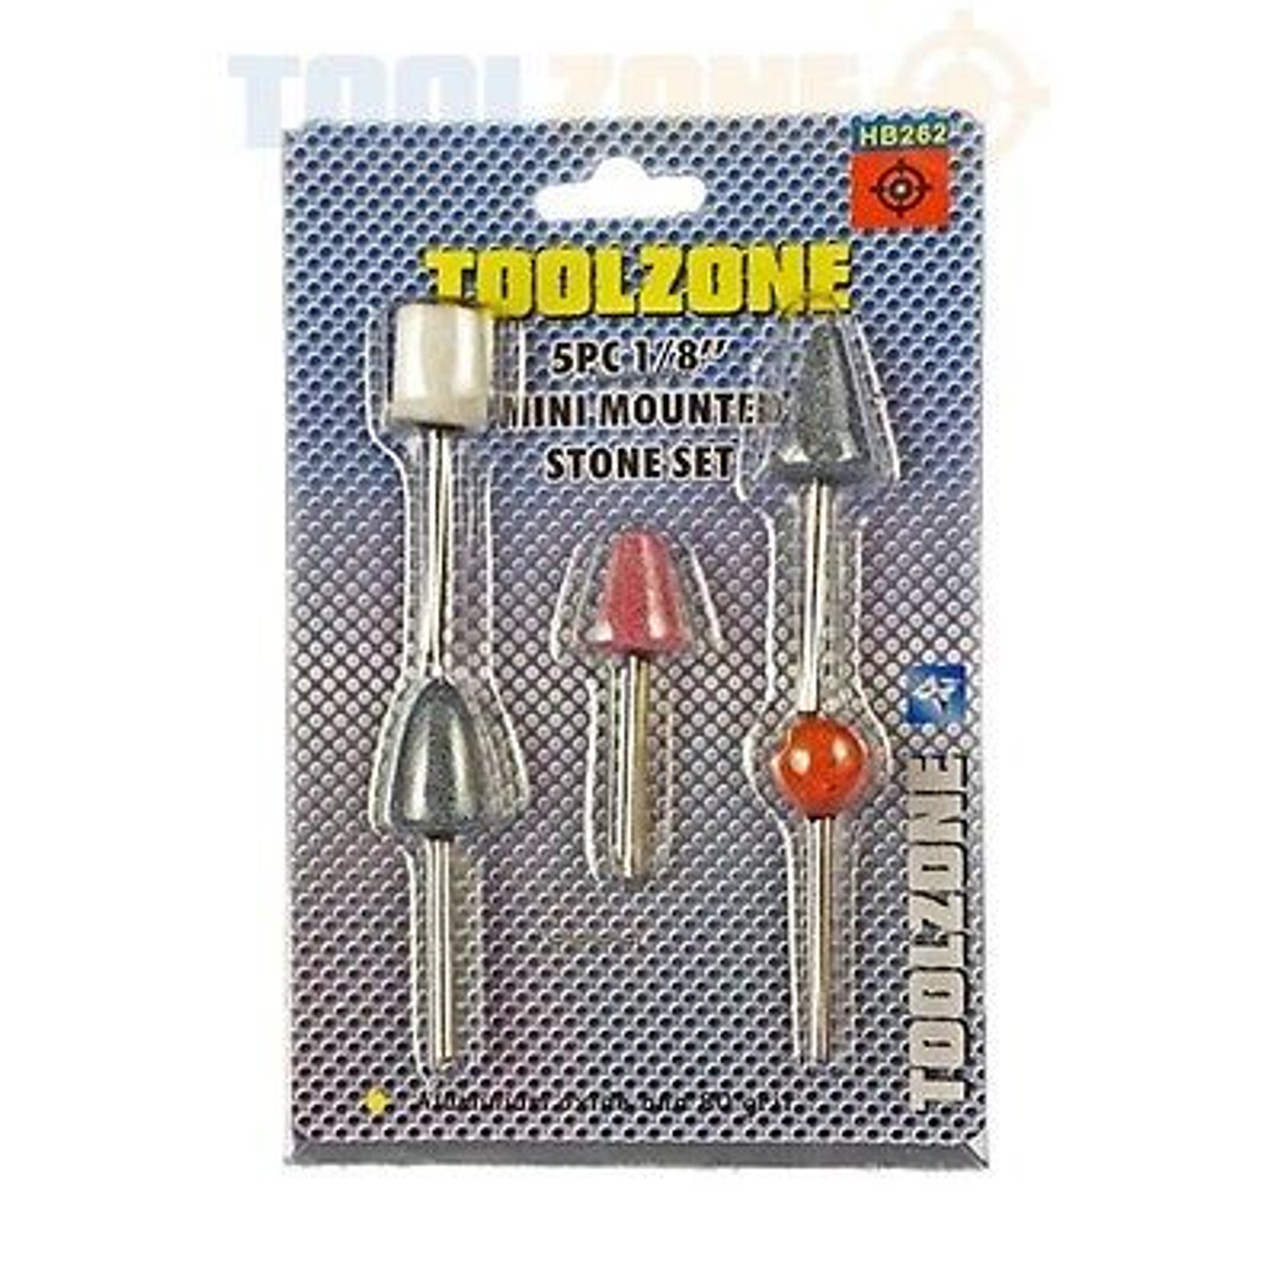 """5pc 1/8"""" Shank Mounted Stone Grinding Polish Set for Die Grinder or Drill HB262"""